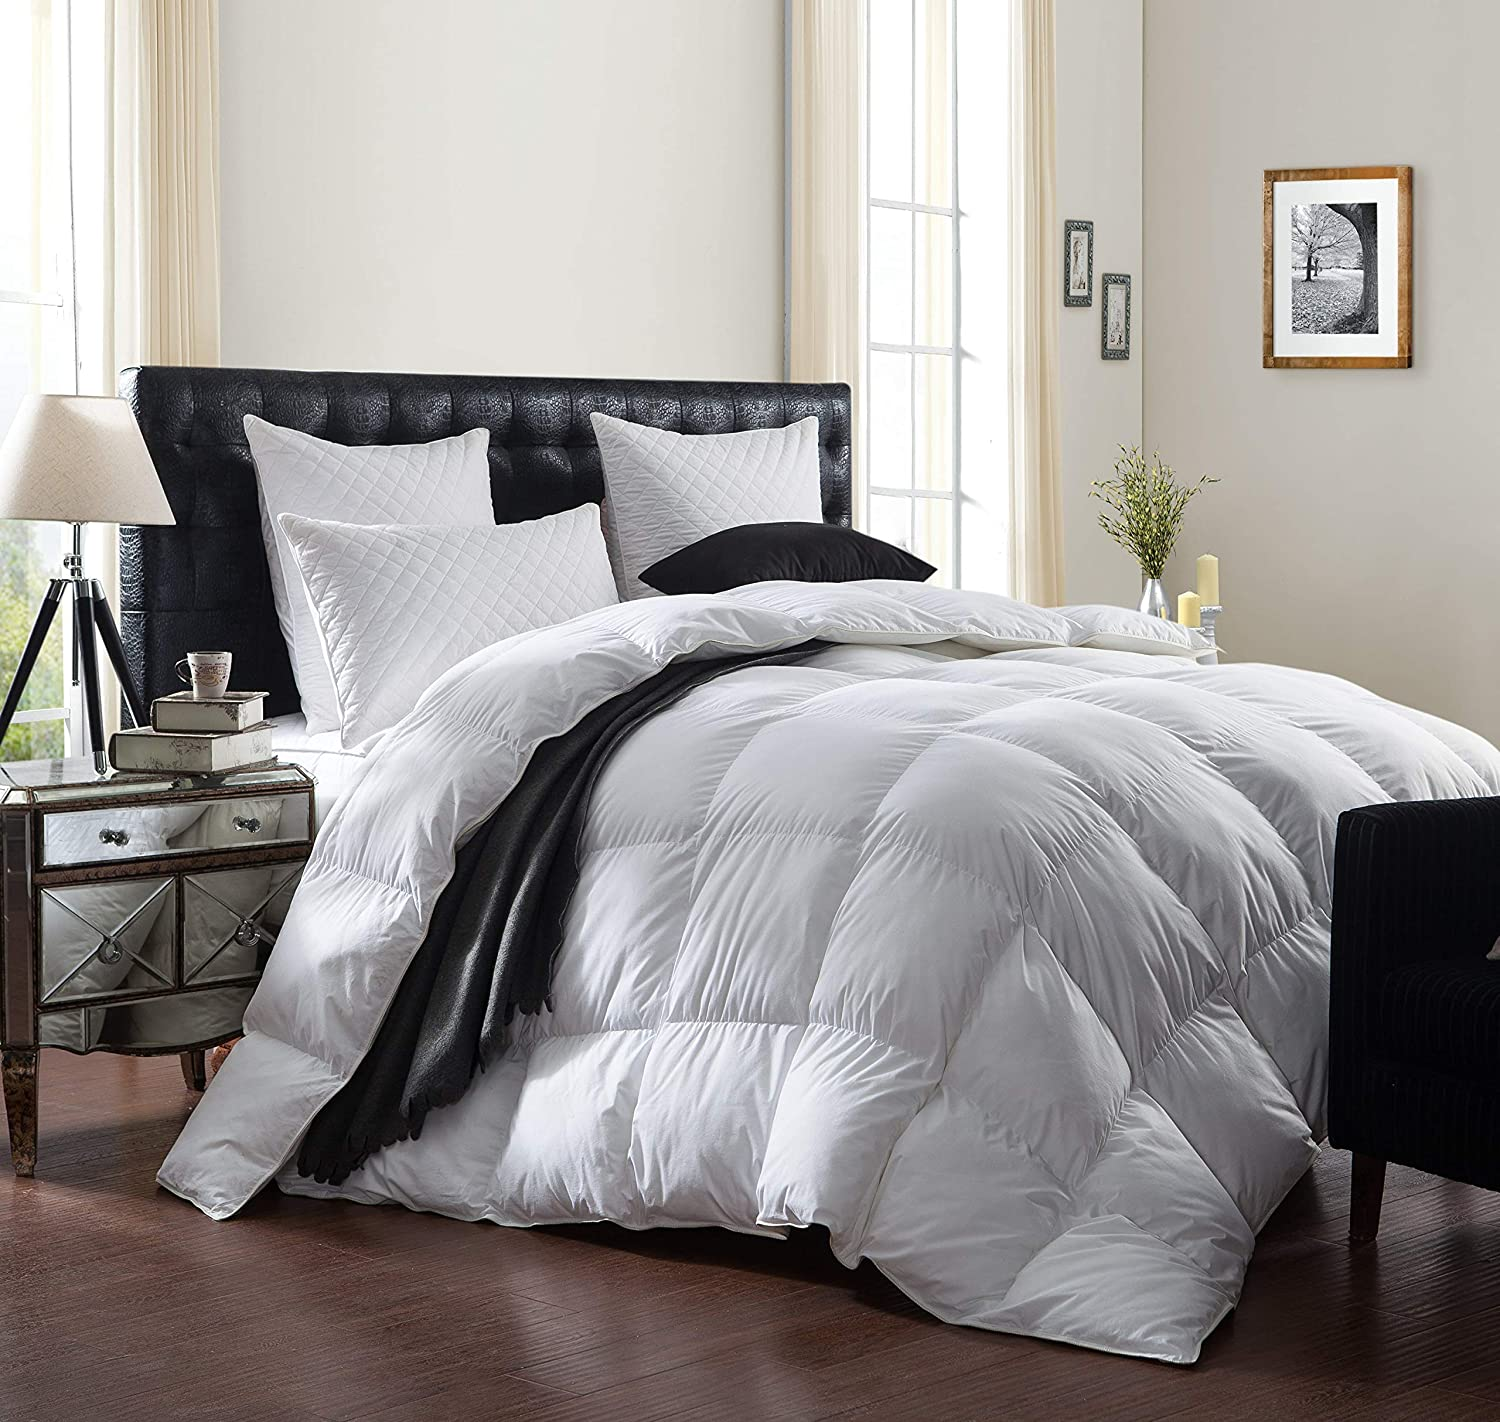 Luxurious 1200 Thread Count Goose Down Comforter Duvet Insert, King Size, 1200TC - 100% Egyptian Cotton Cover